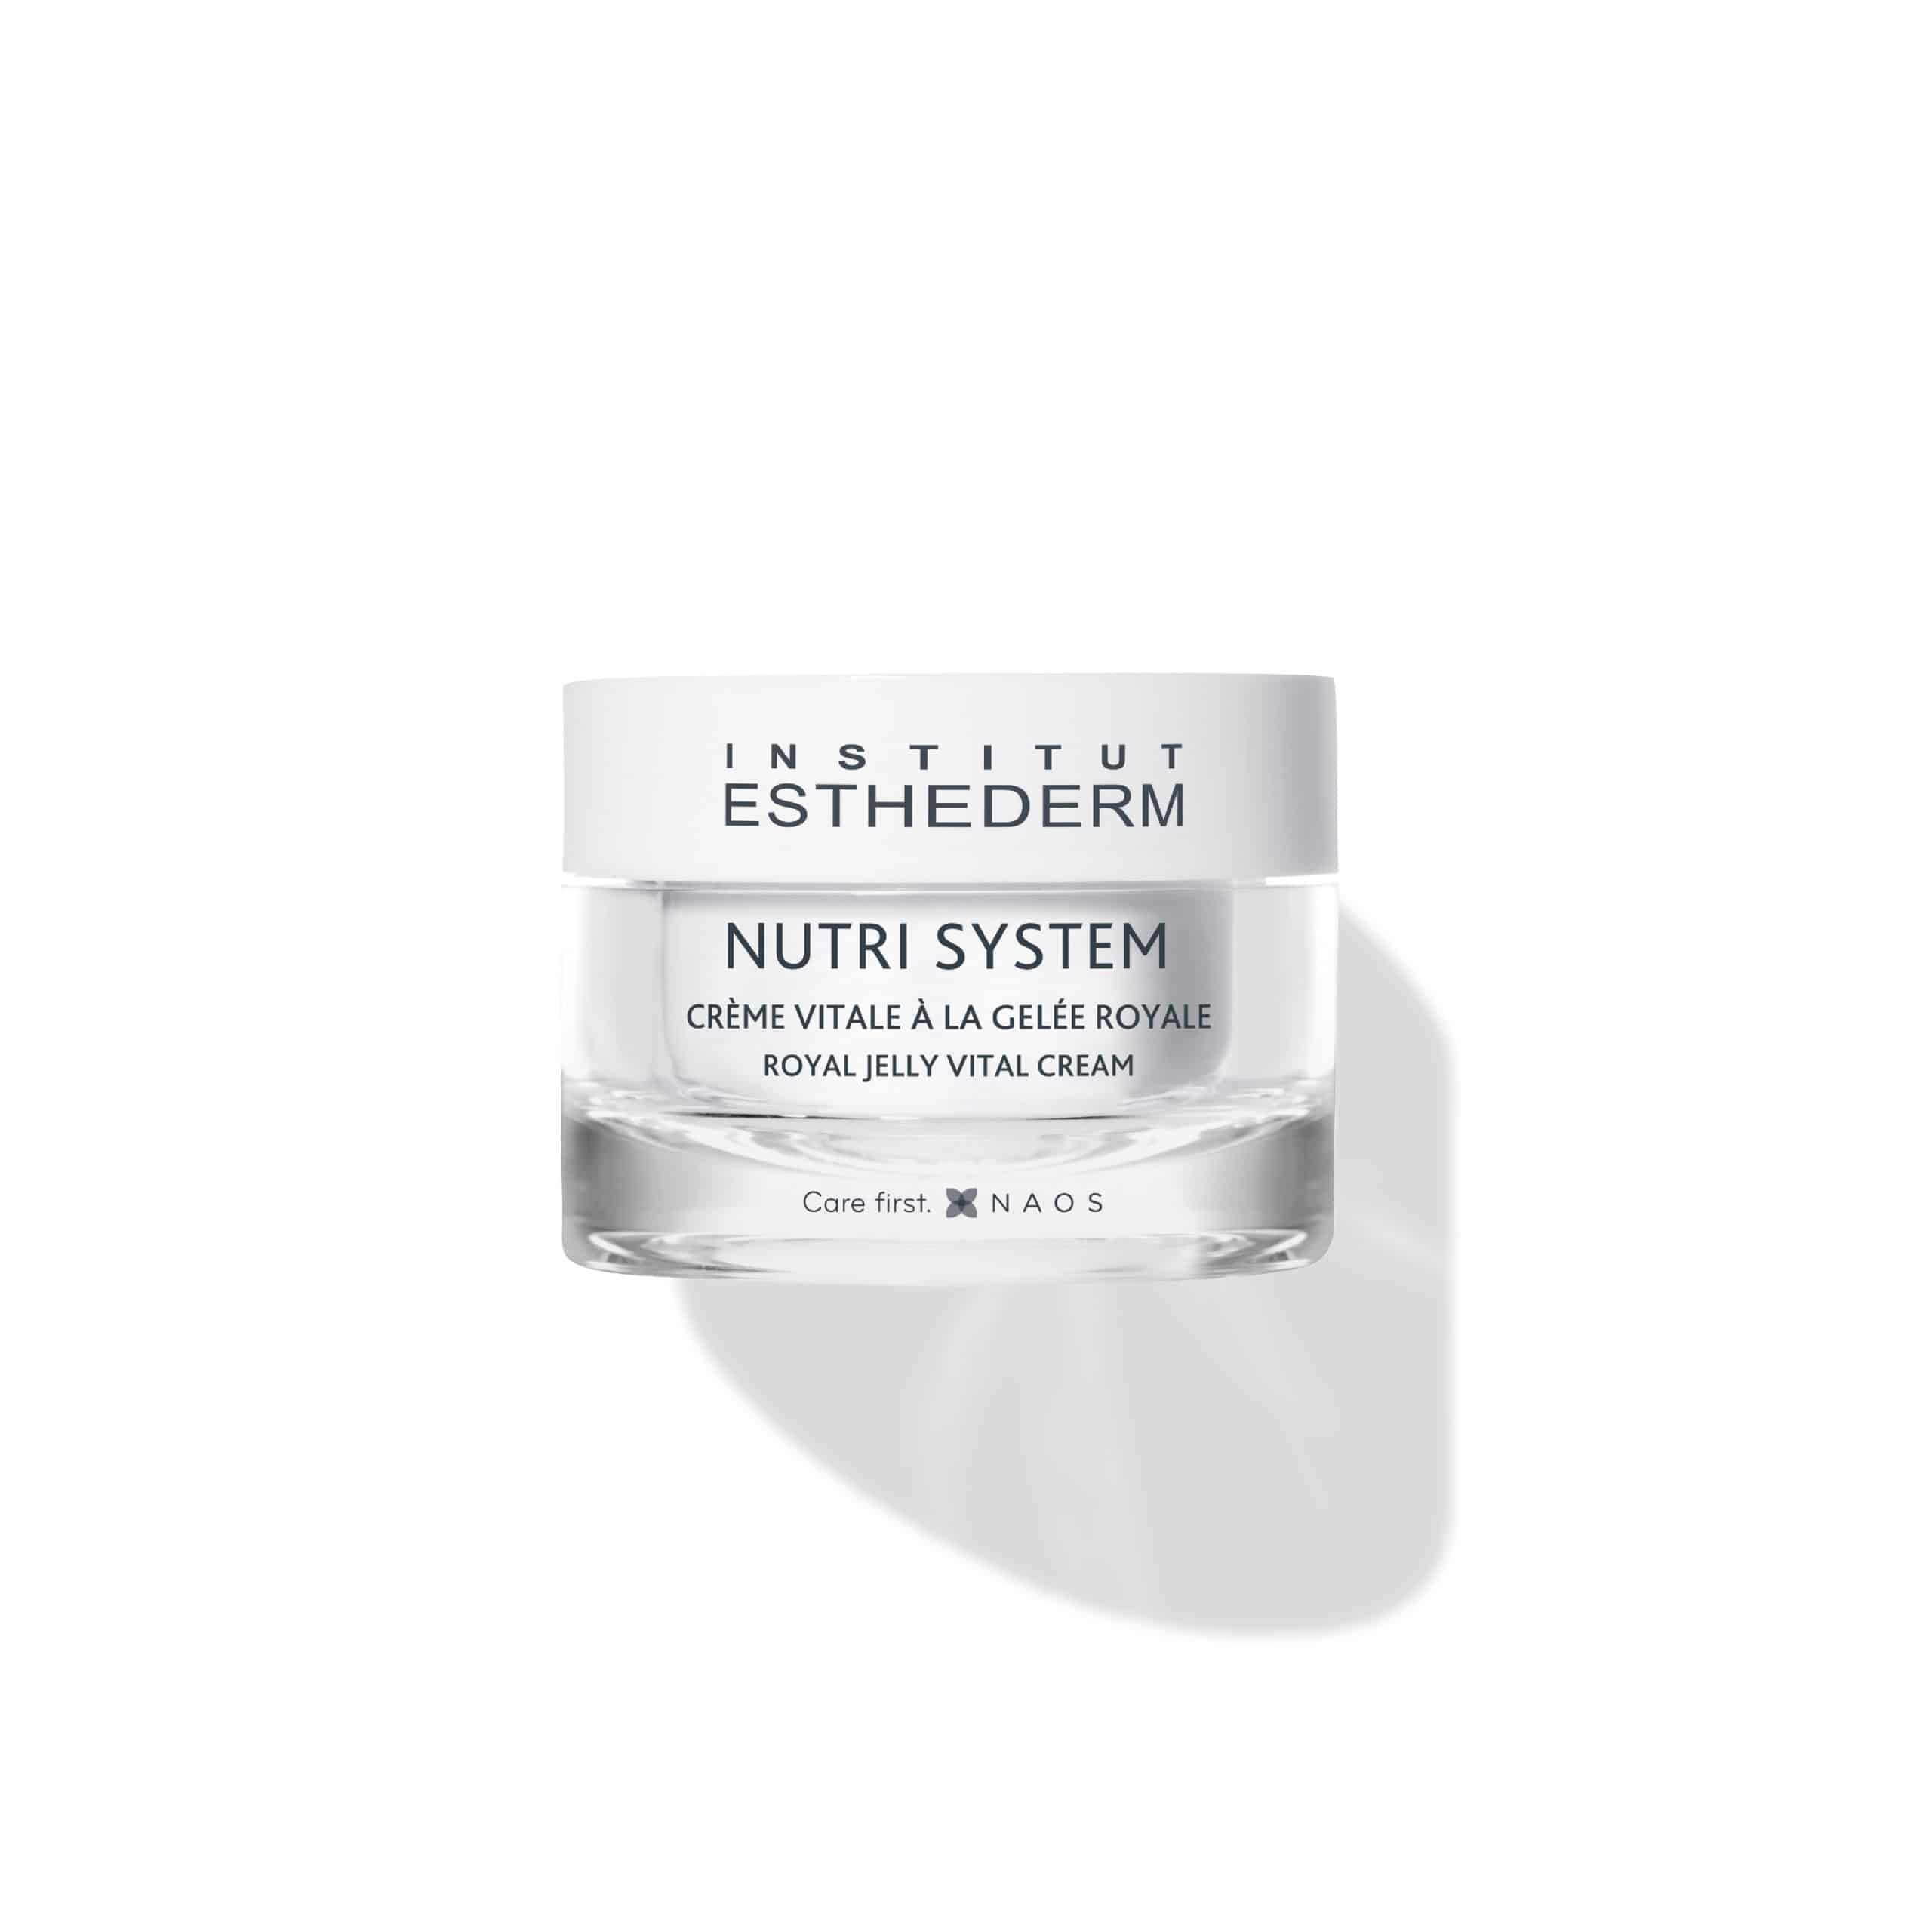 ESTHEDERM product photo, Nutri System Royal Jelly Vital Cream 50ml, revitalizing care, essential elements, skin nutrition